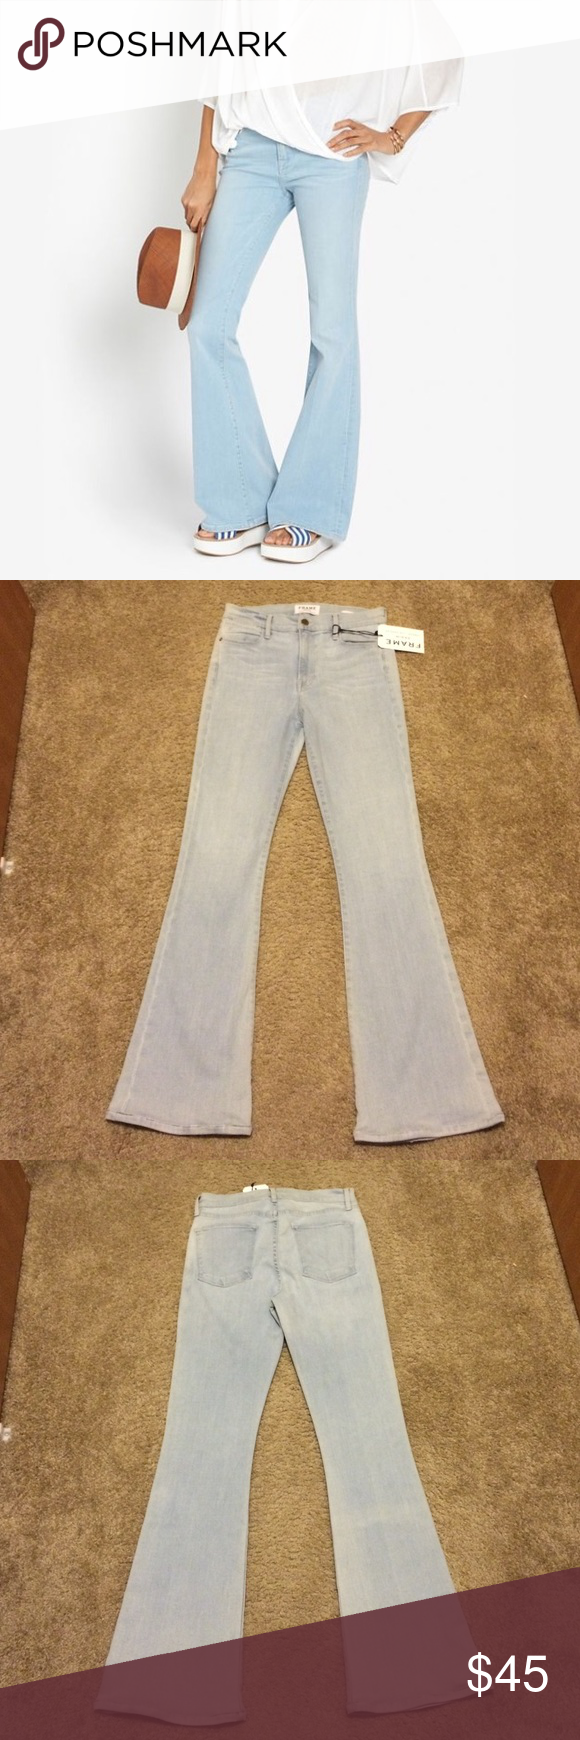 "New Frame denim Jeans Le High Flare Hyde 30 petite Frame denim jeans in Hyde.  The wash is a very pale blue.  Size 30, altered to a 30.5"" inseam, original hems reattached.  Le High Flare, new with tag. Frame Jeans Flare & Wide Leg"